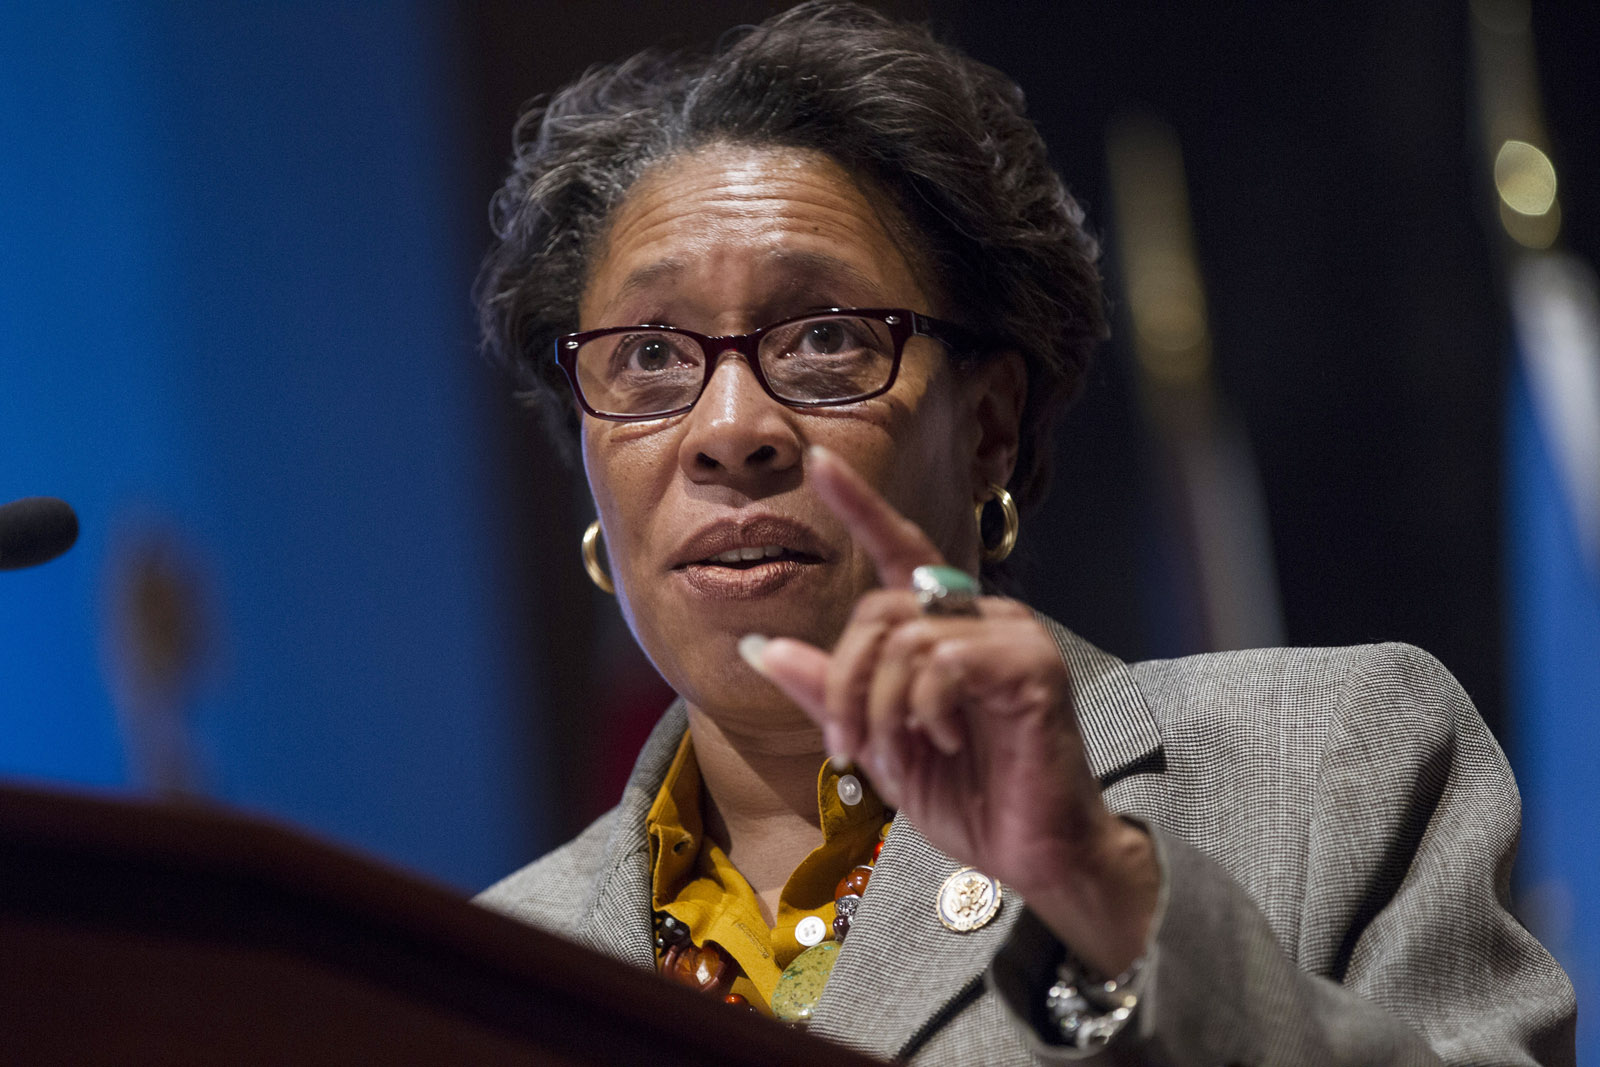 CBC Chairman Rep. Marcia Fudge (D-OH) speaks during a Congressional Black Caucus ceremonial oath of office ceremony in the Congressional Visitors Center at the U.S. Capitol in Washington D.C.